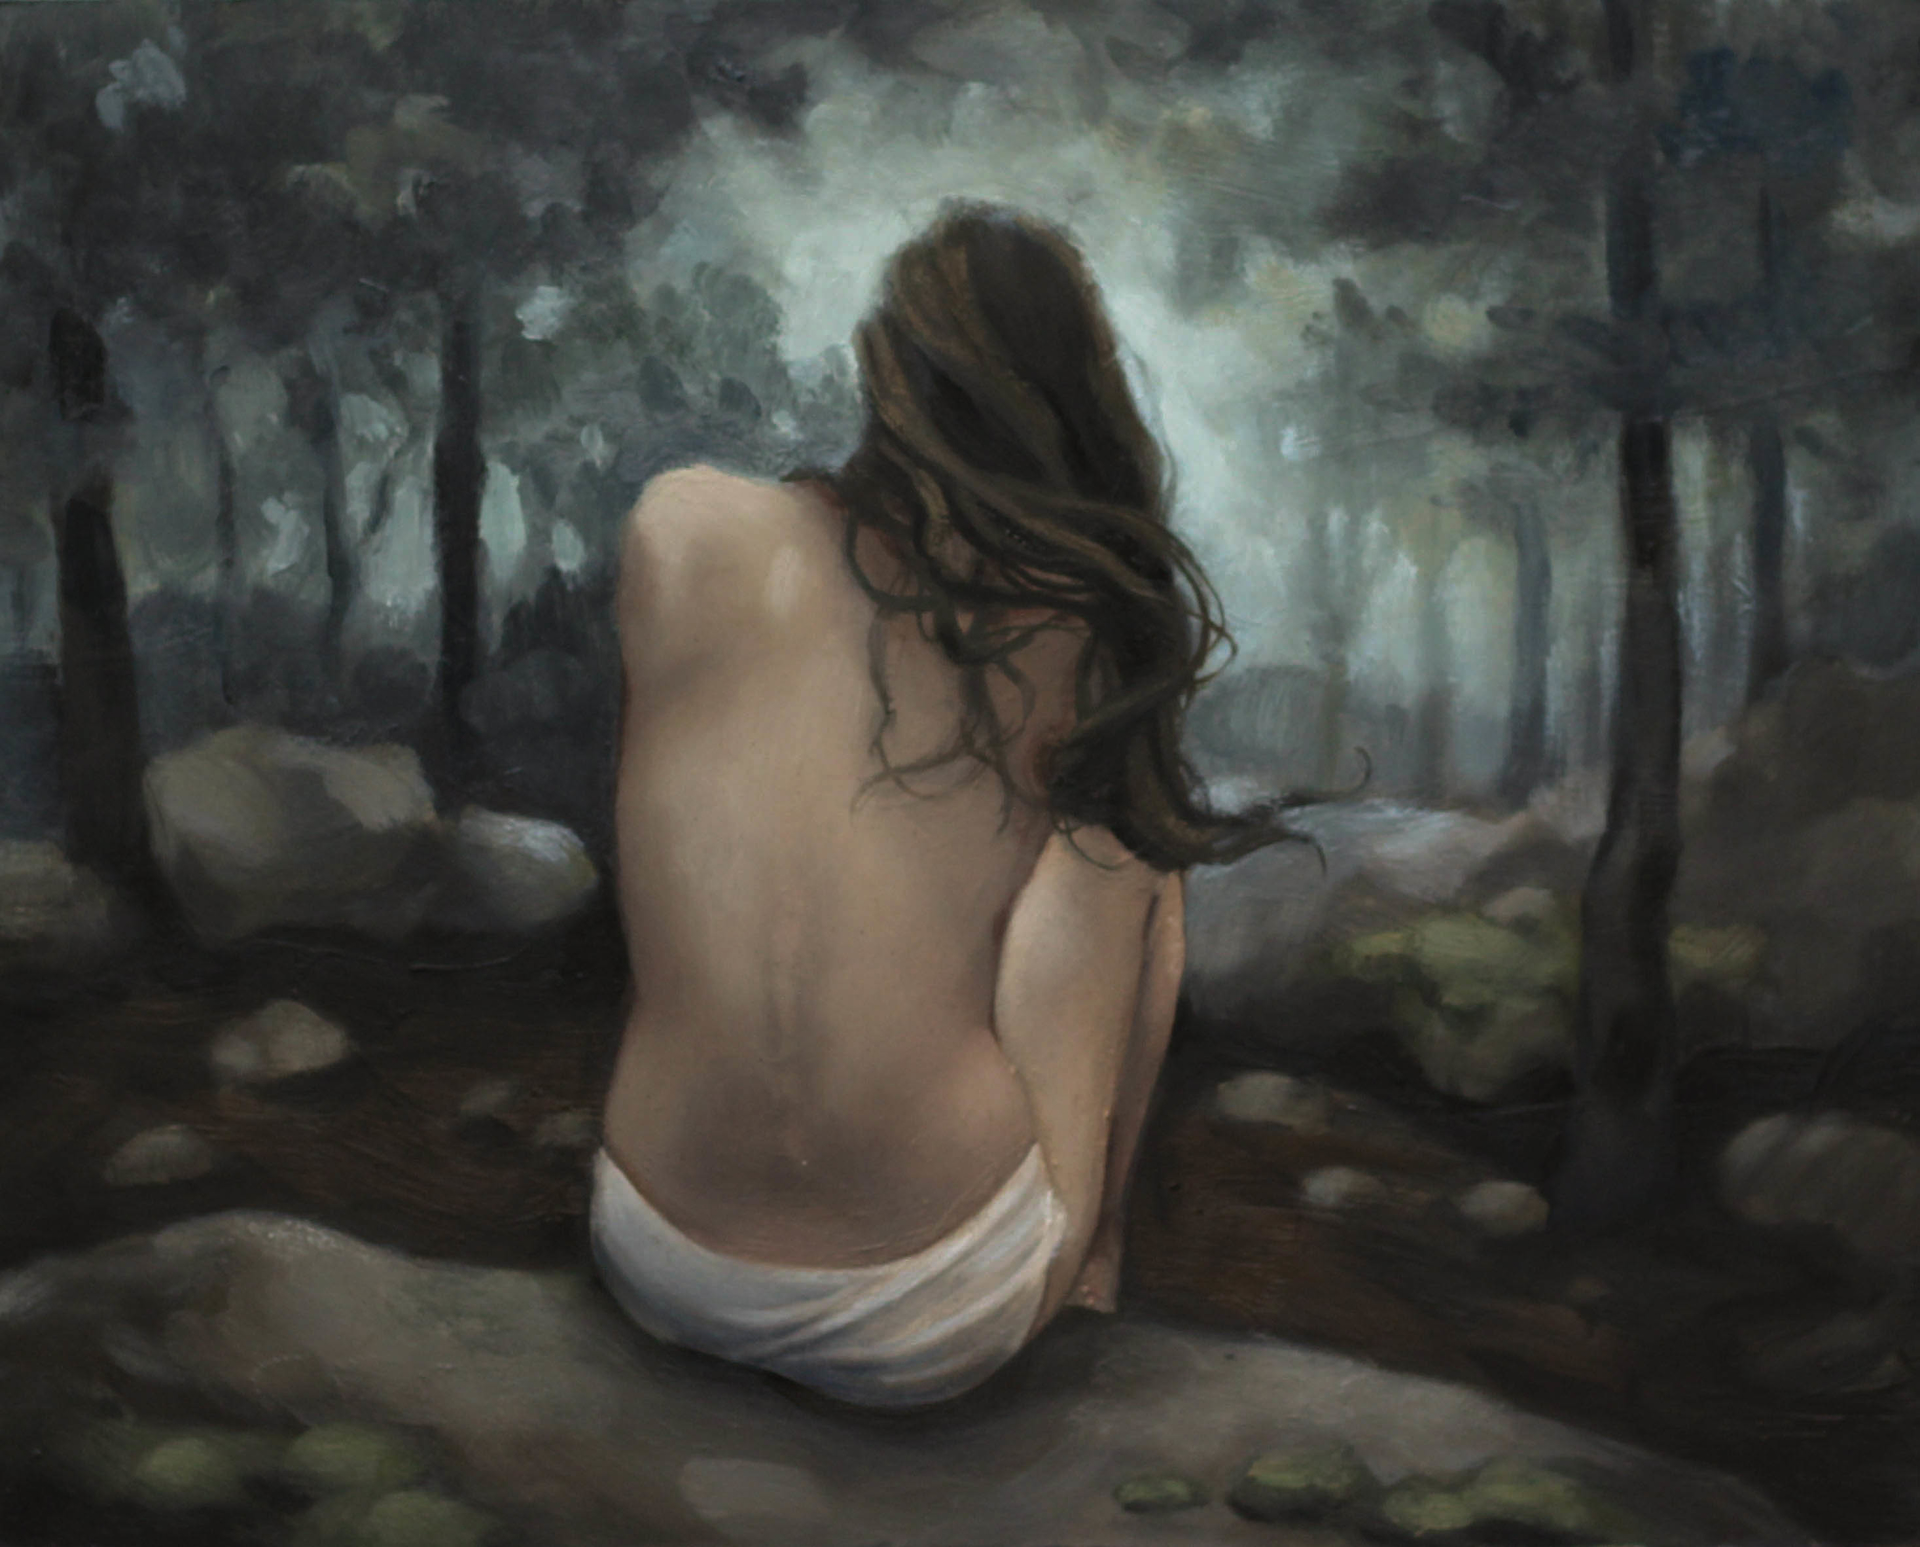 Southern Gothic No 1 by Mary Chiaramonte